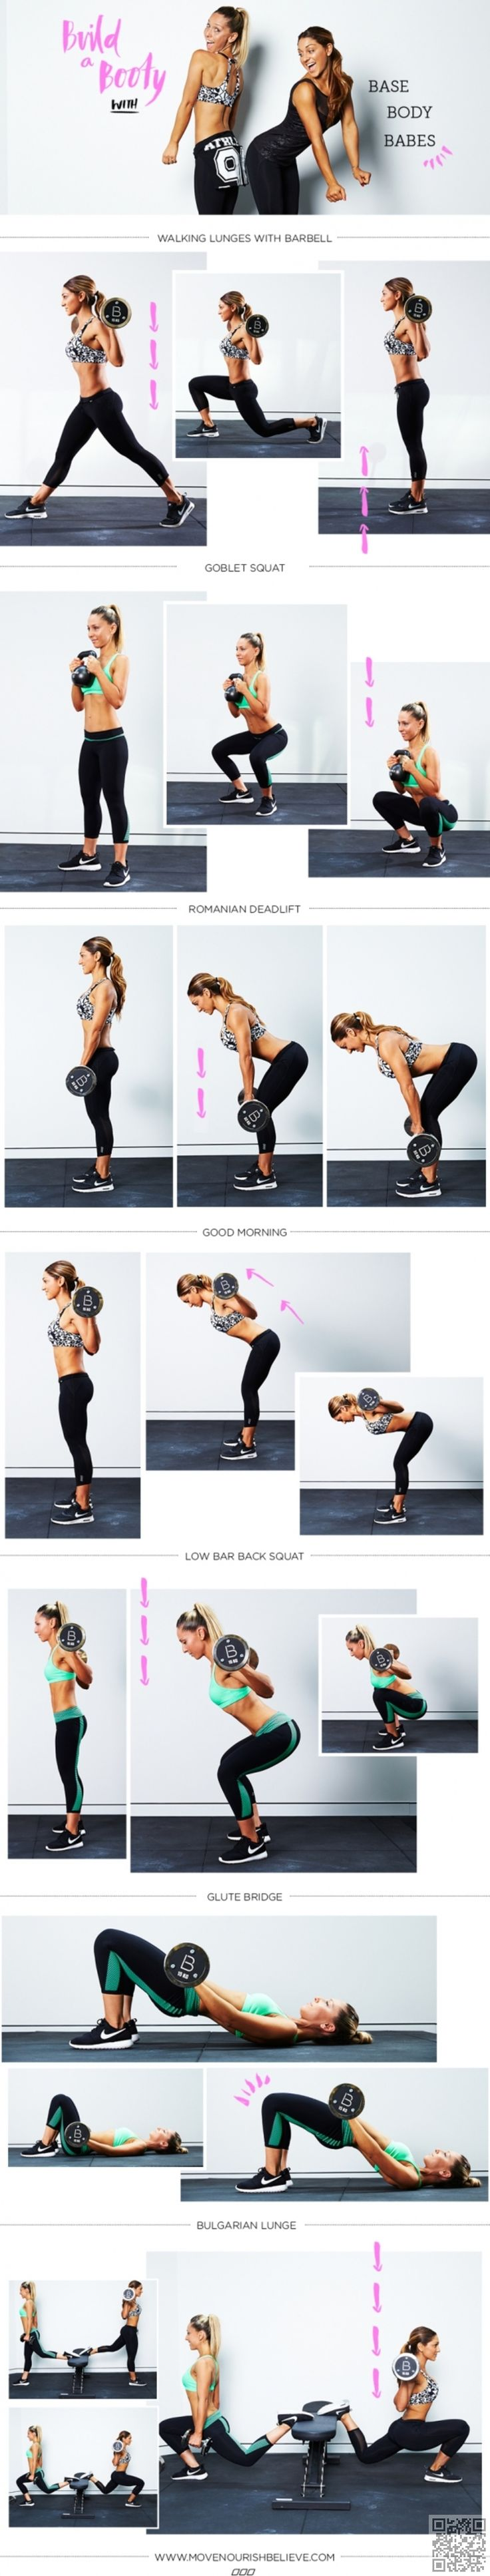 Excerise: 22 Leg Workouts You Must Be Already Doing to Rock ...